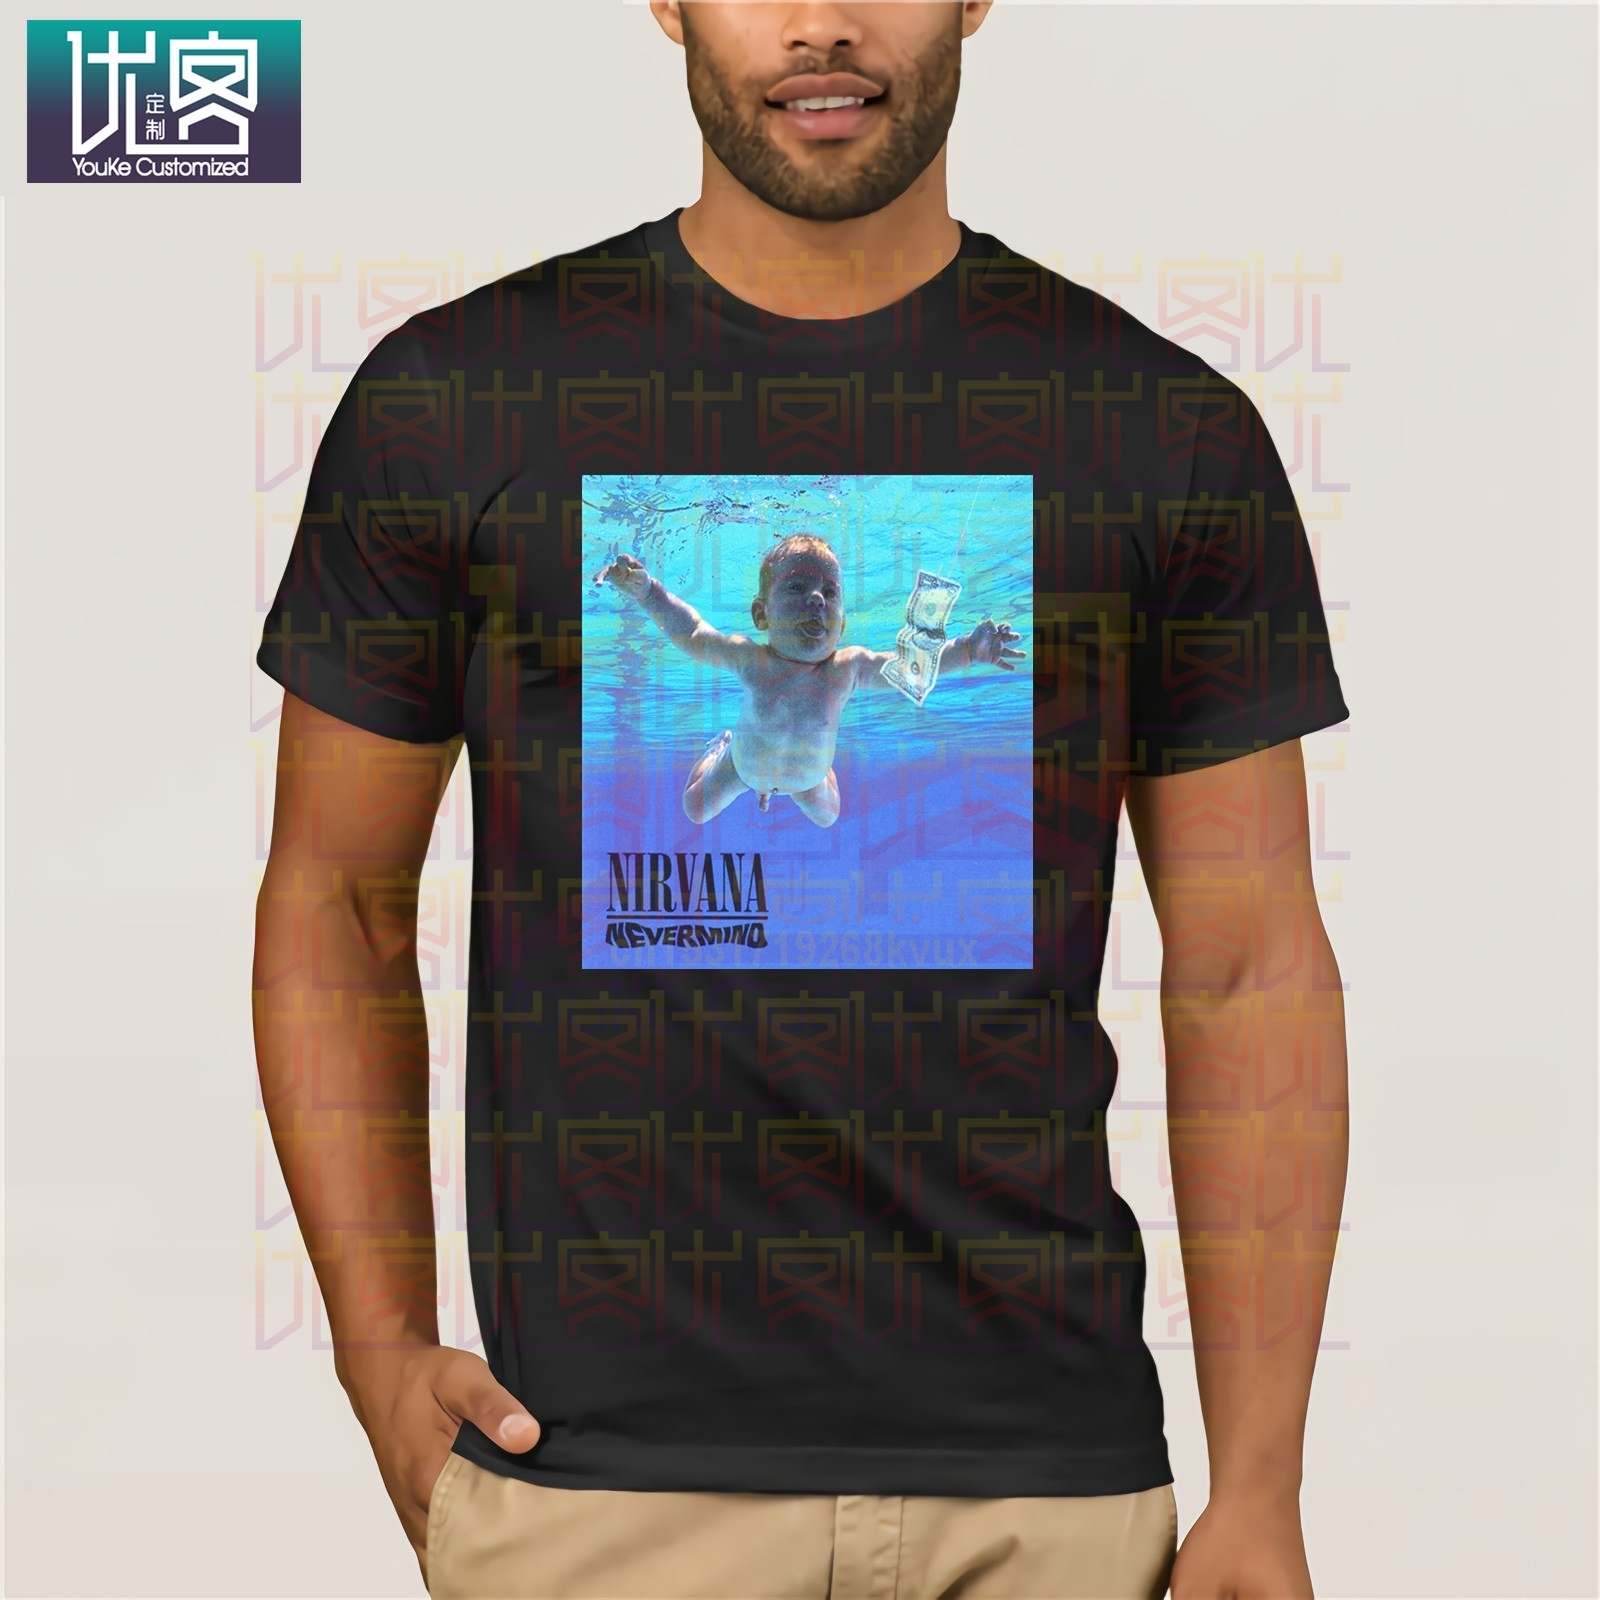 Nirvana Nevermind Album Vintage T-Shirt S Indie Rock Grunge 90s Vtg Retro Punk Clothes Popular T-Shirt Crewneck 100% Cotton Tees image